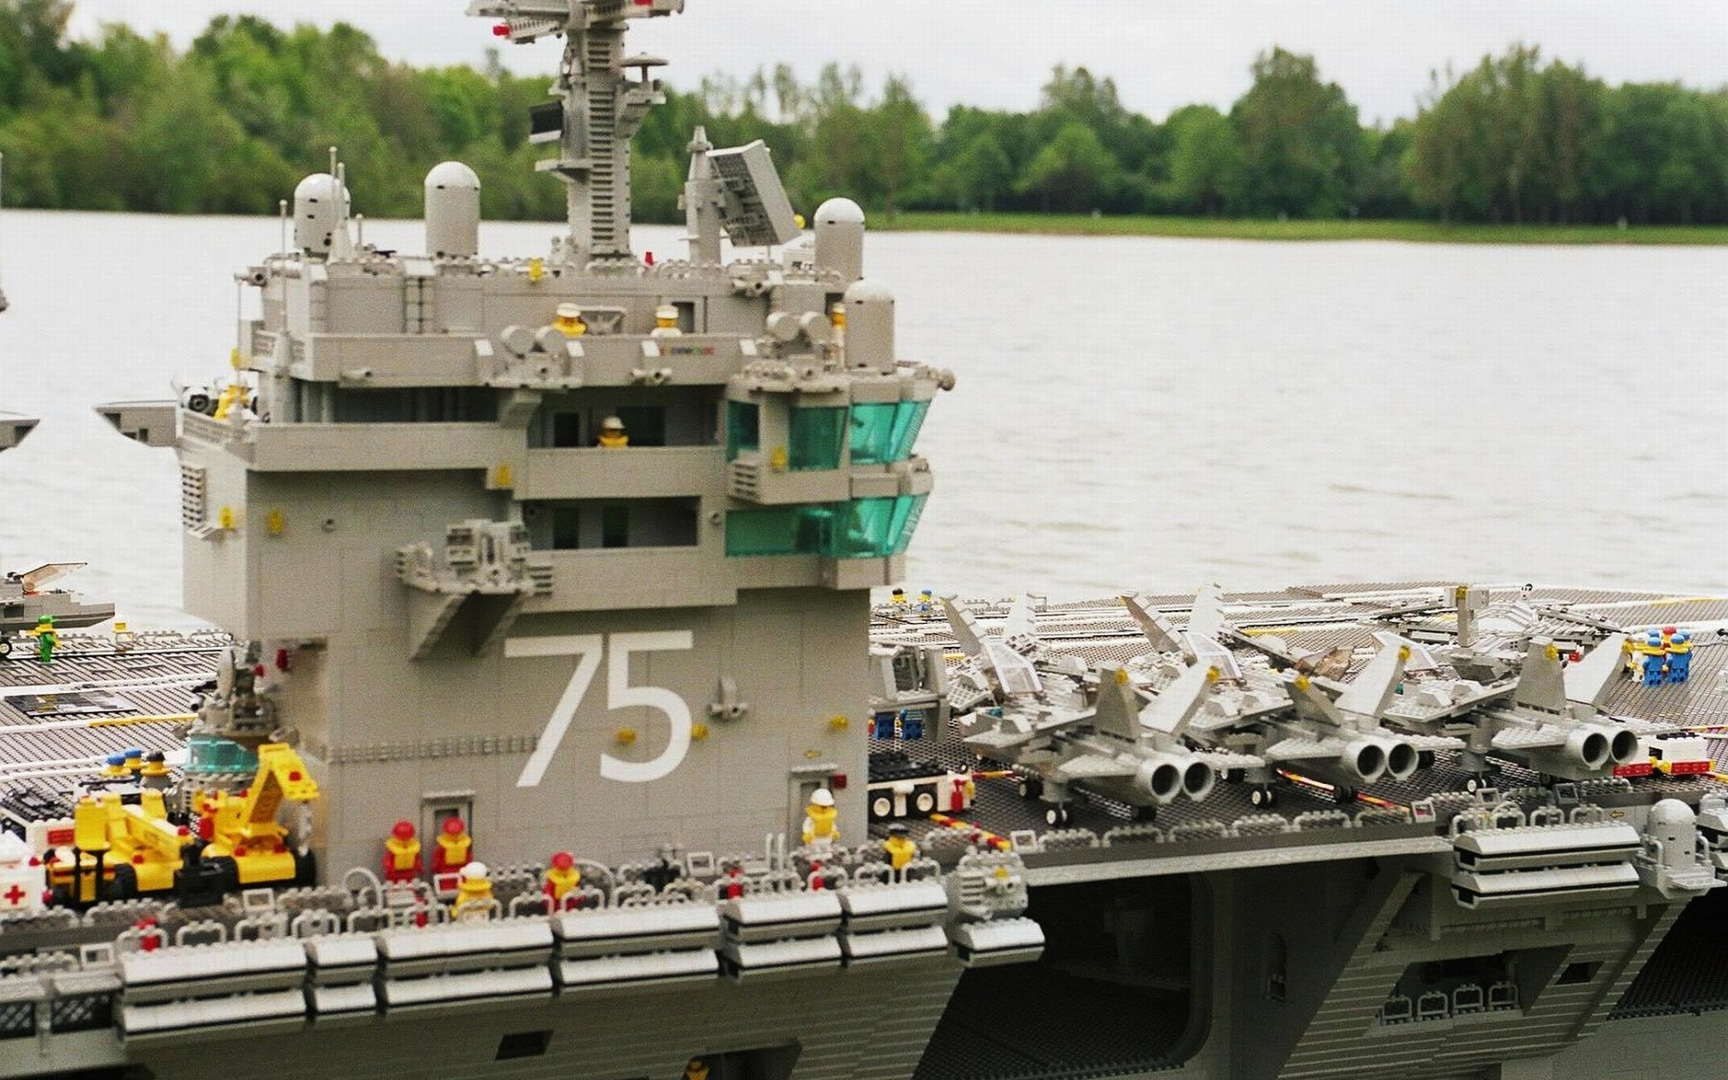 LEGO-Soldiers-Lego-Aircraft-Carrier-Military-Desktop-Free-wallpaper-wp3807633